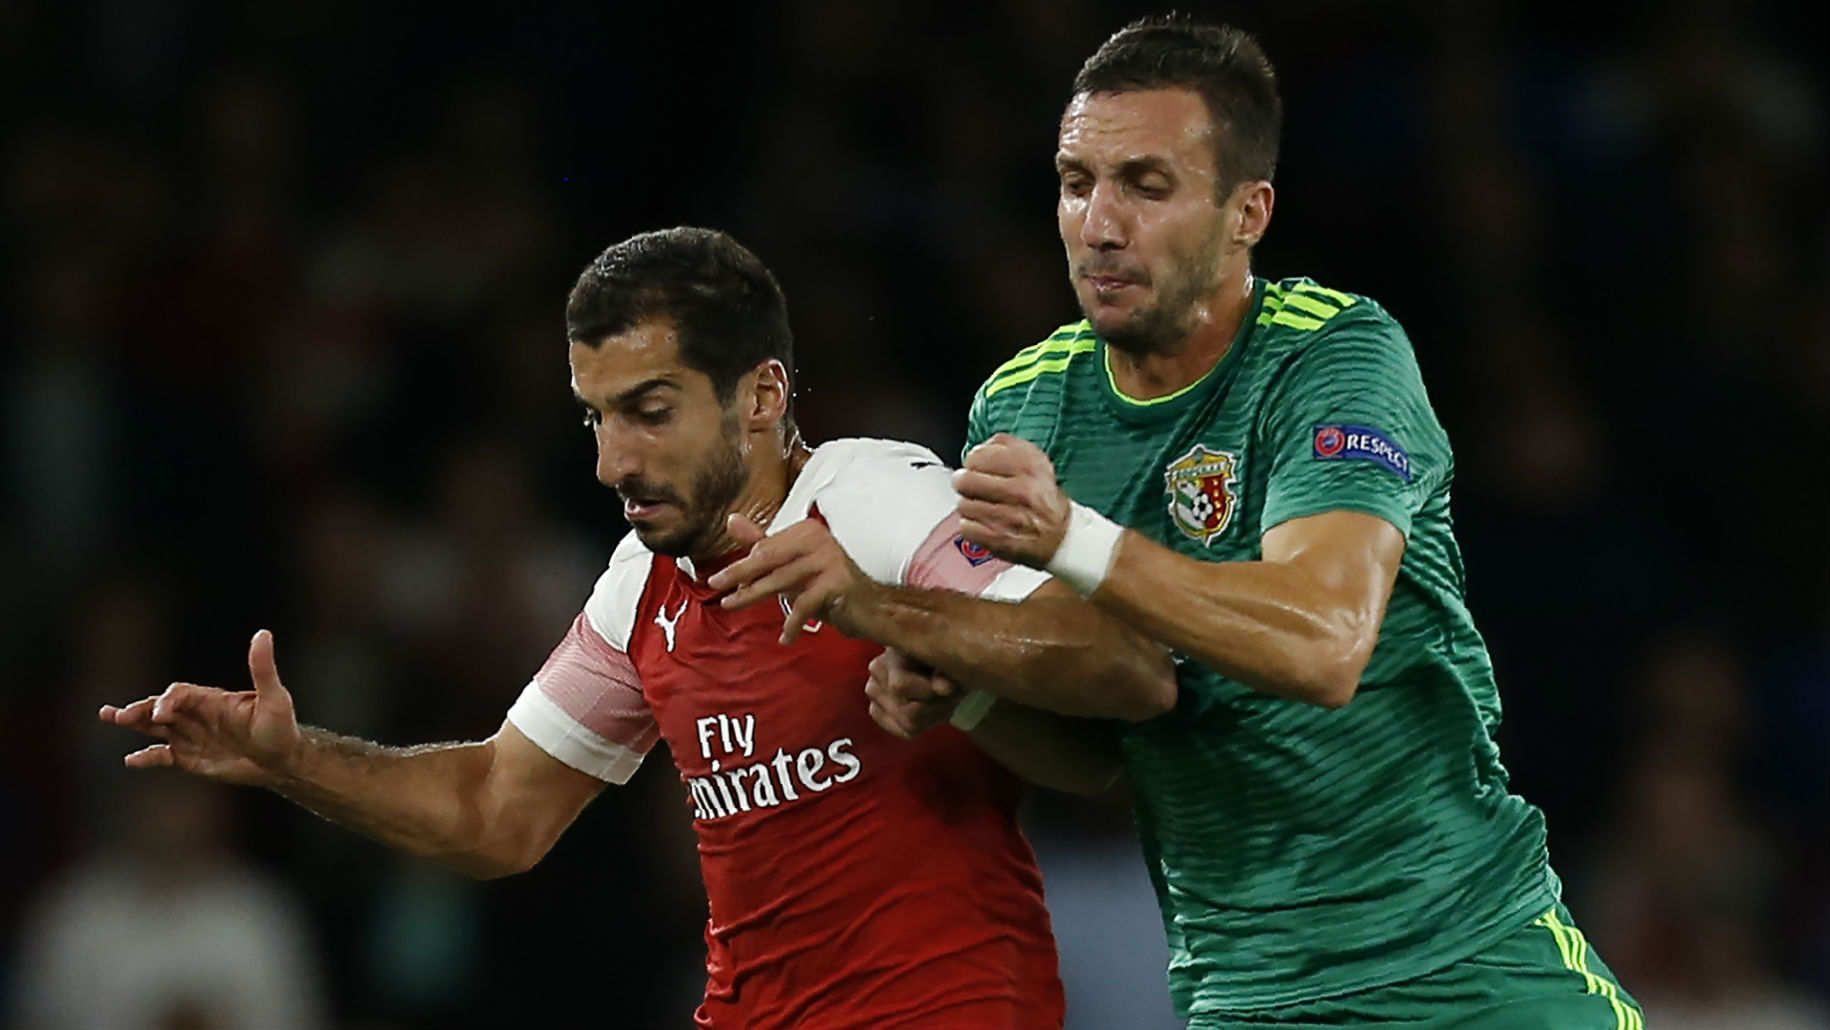 Arsenal cruise past Vorskla Poltava to win Europa League group